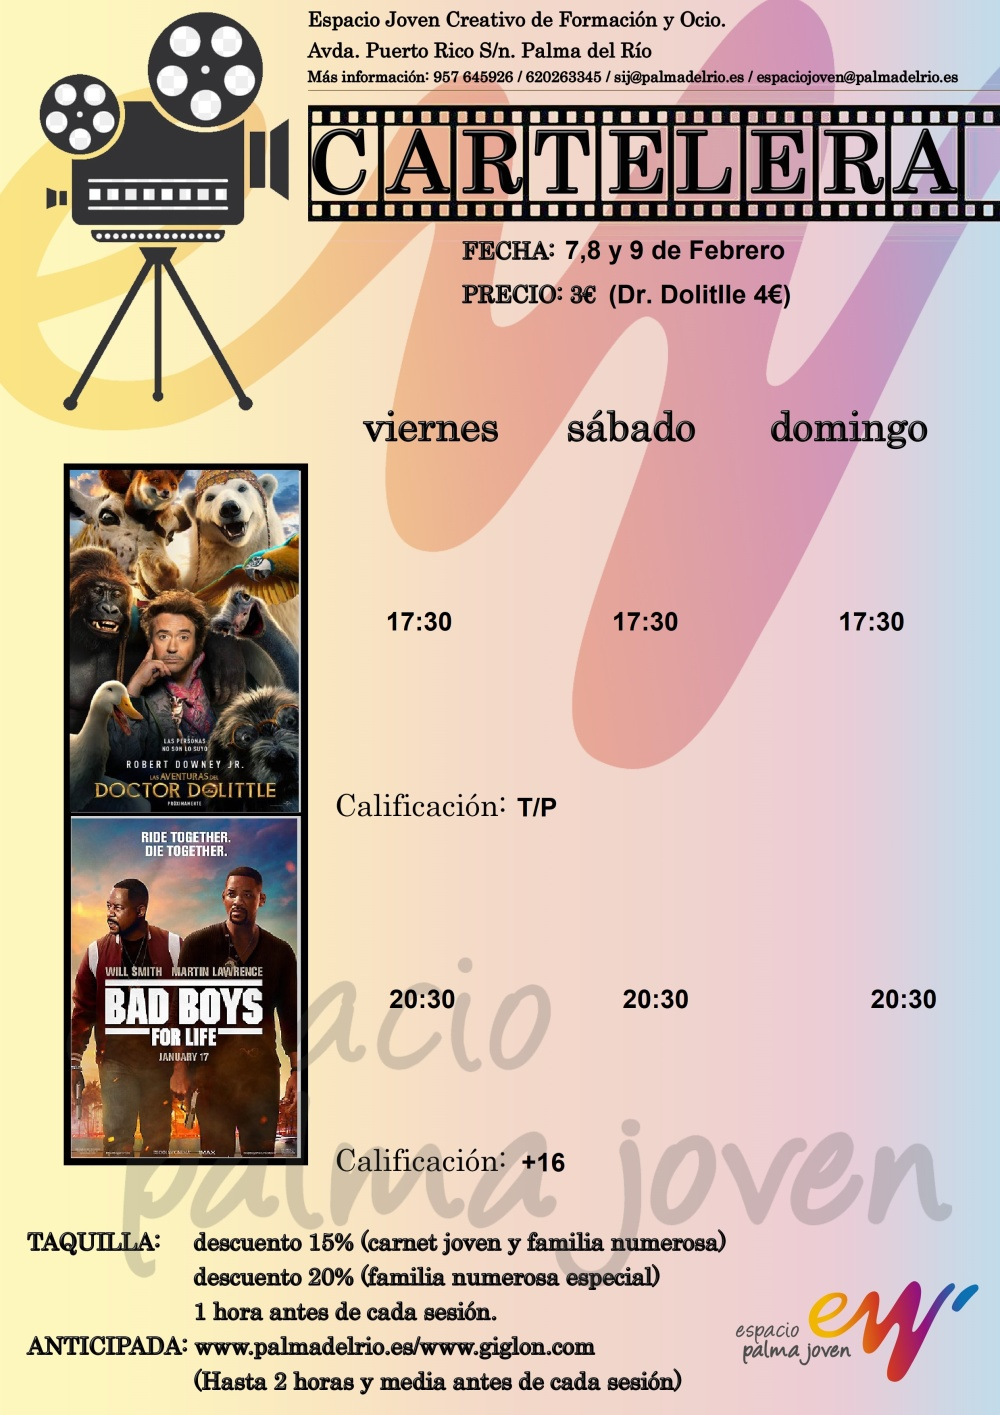 https://www.palmadelrio.es/sites/default/files/horario_cine_7.8.9_febrero_2020.jpg